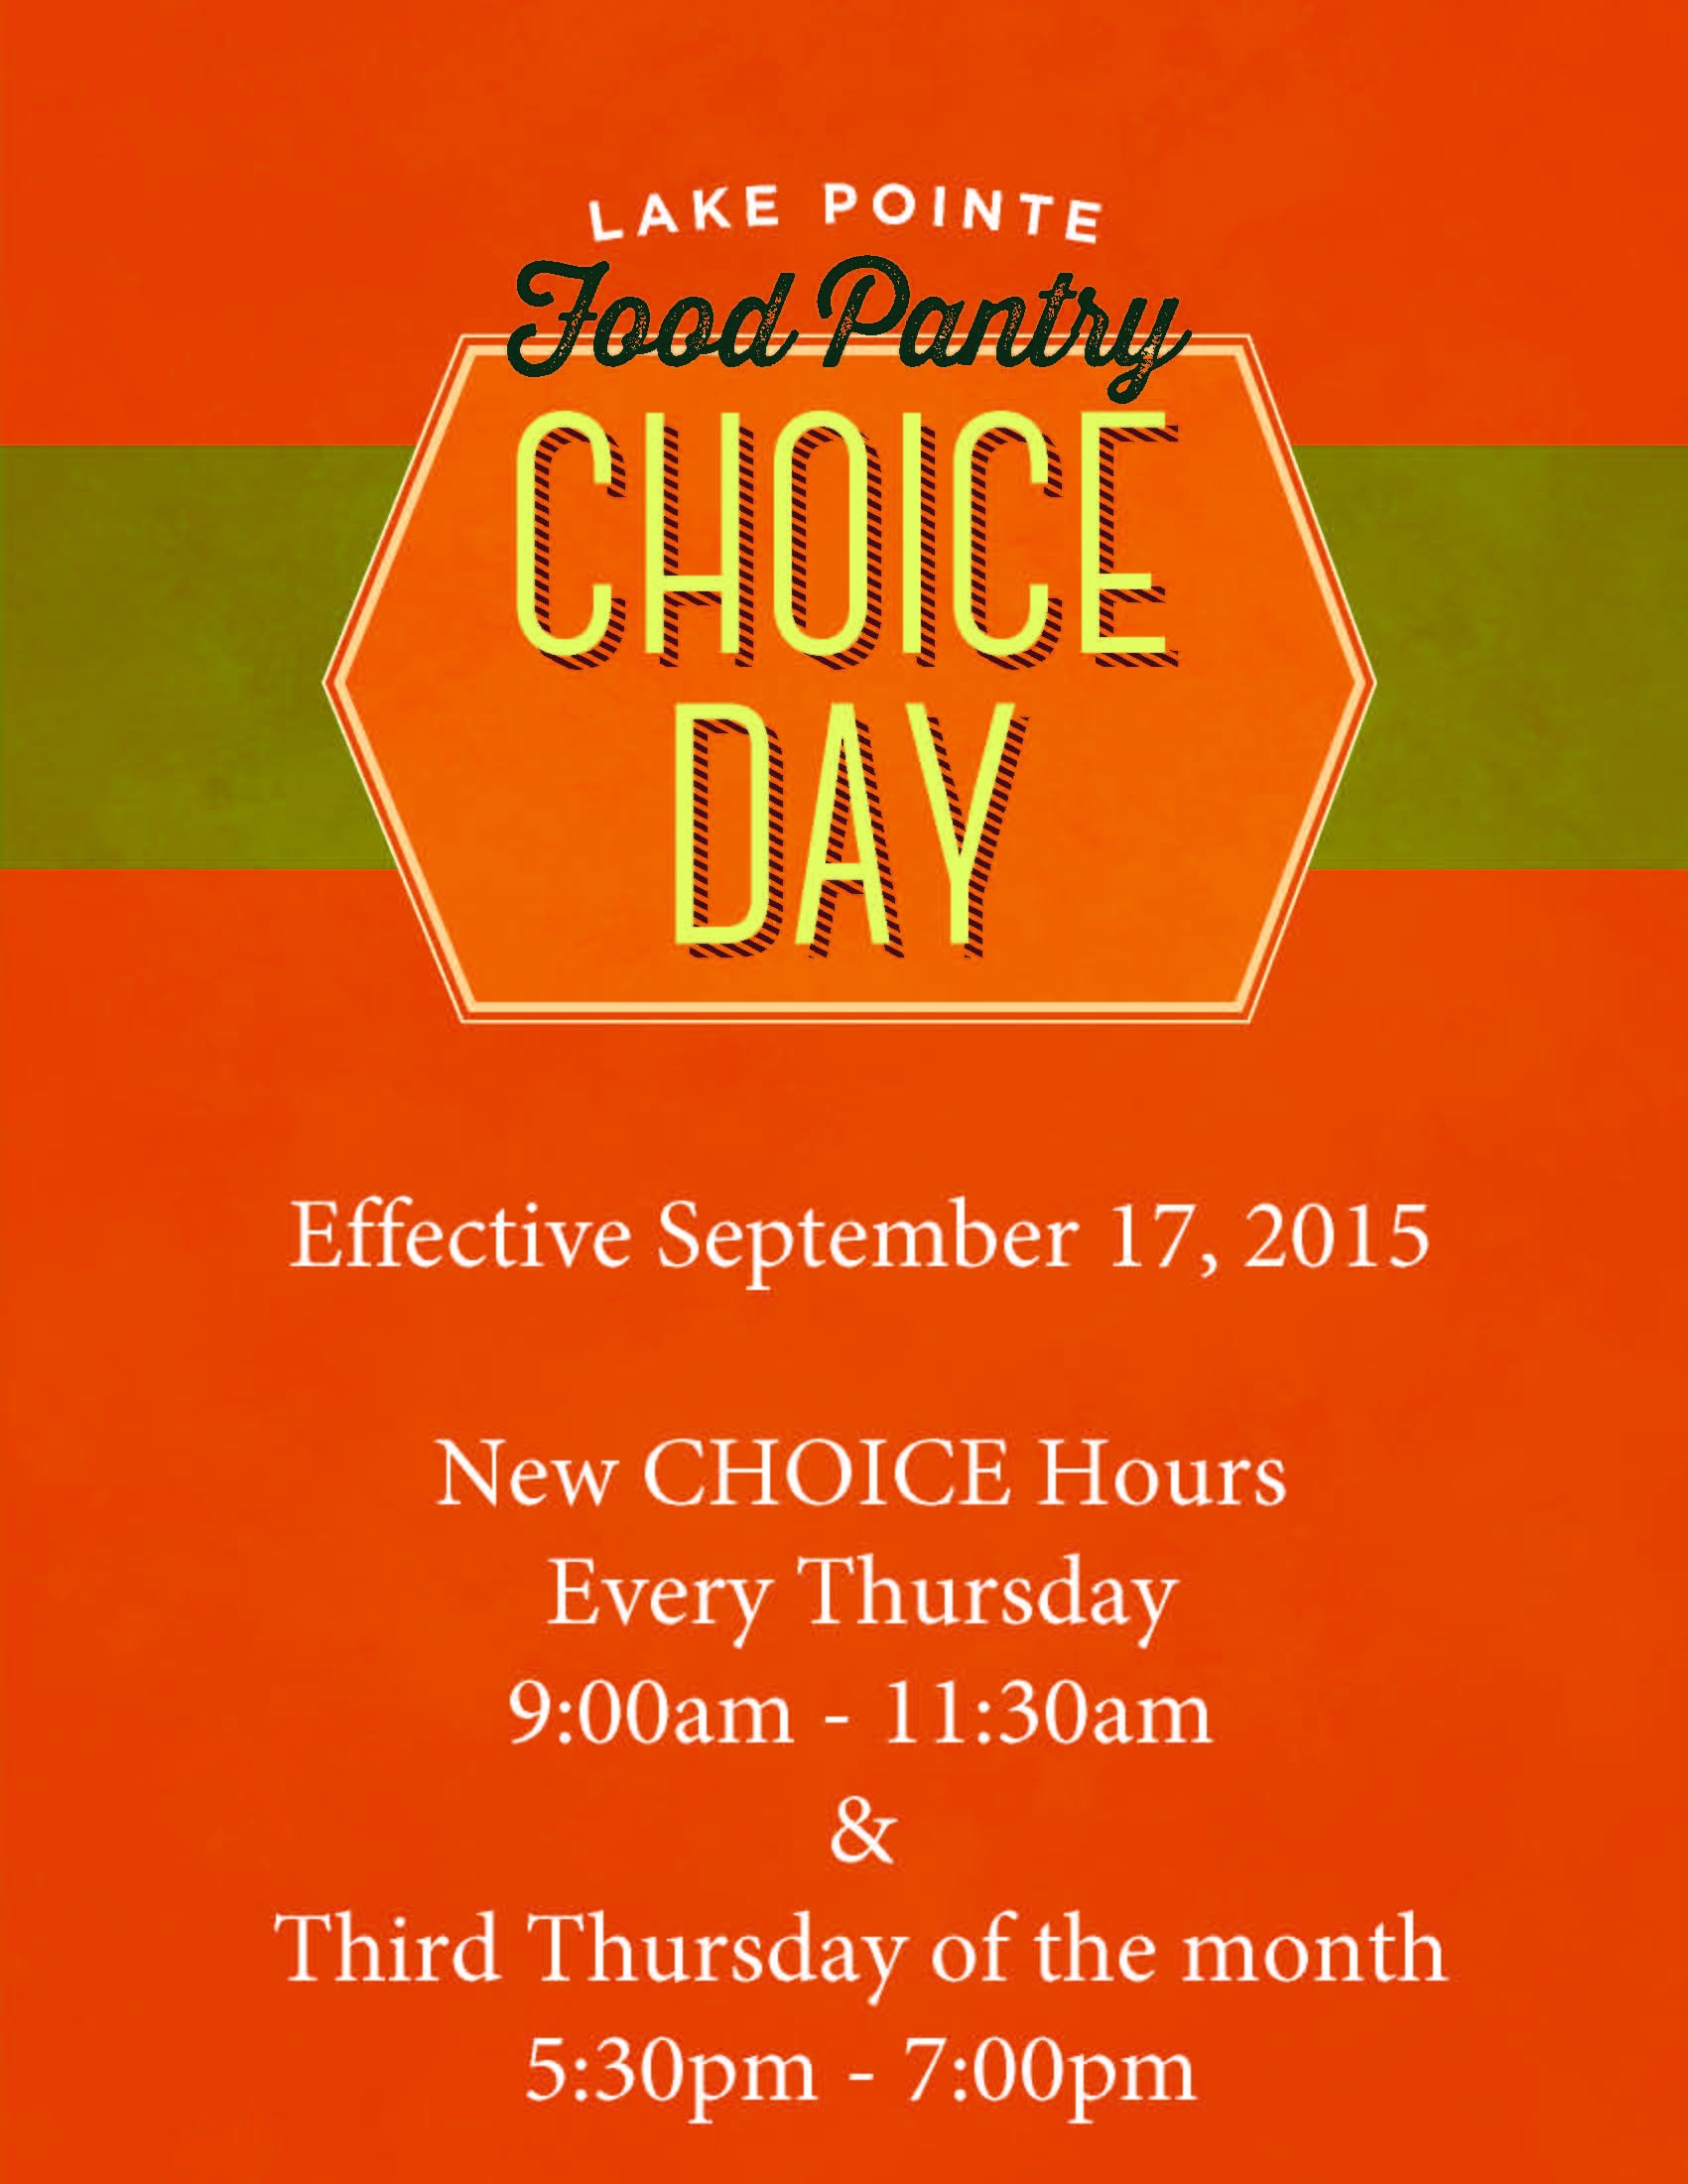 Lake Pointe Church adds new 'Choice Day' hours for residents needing food assistance